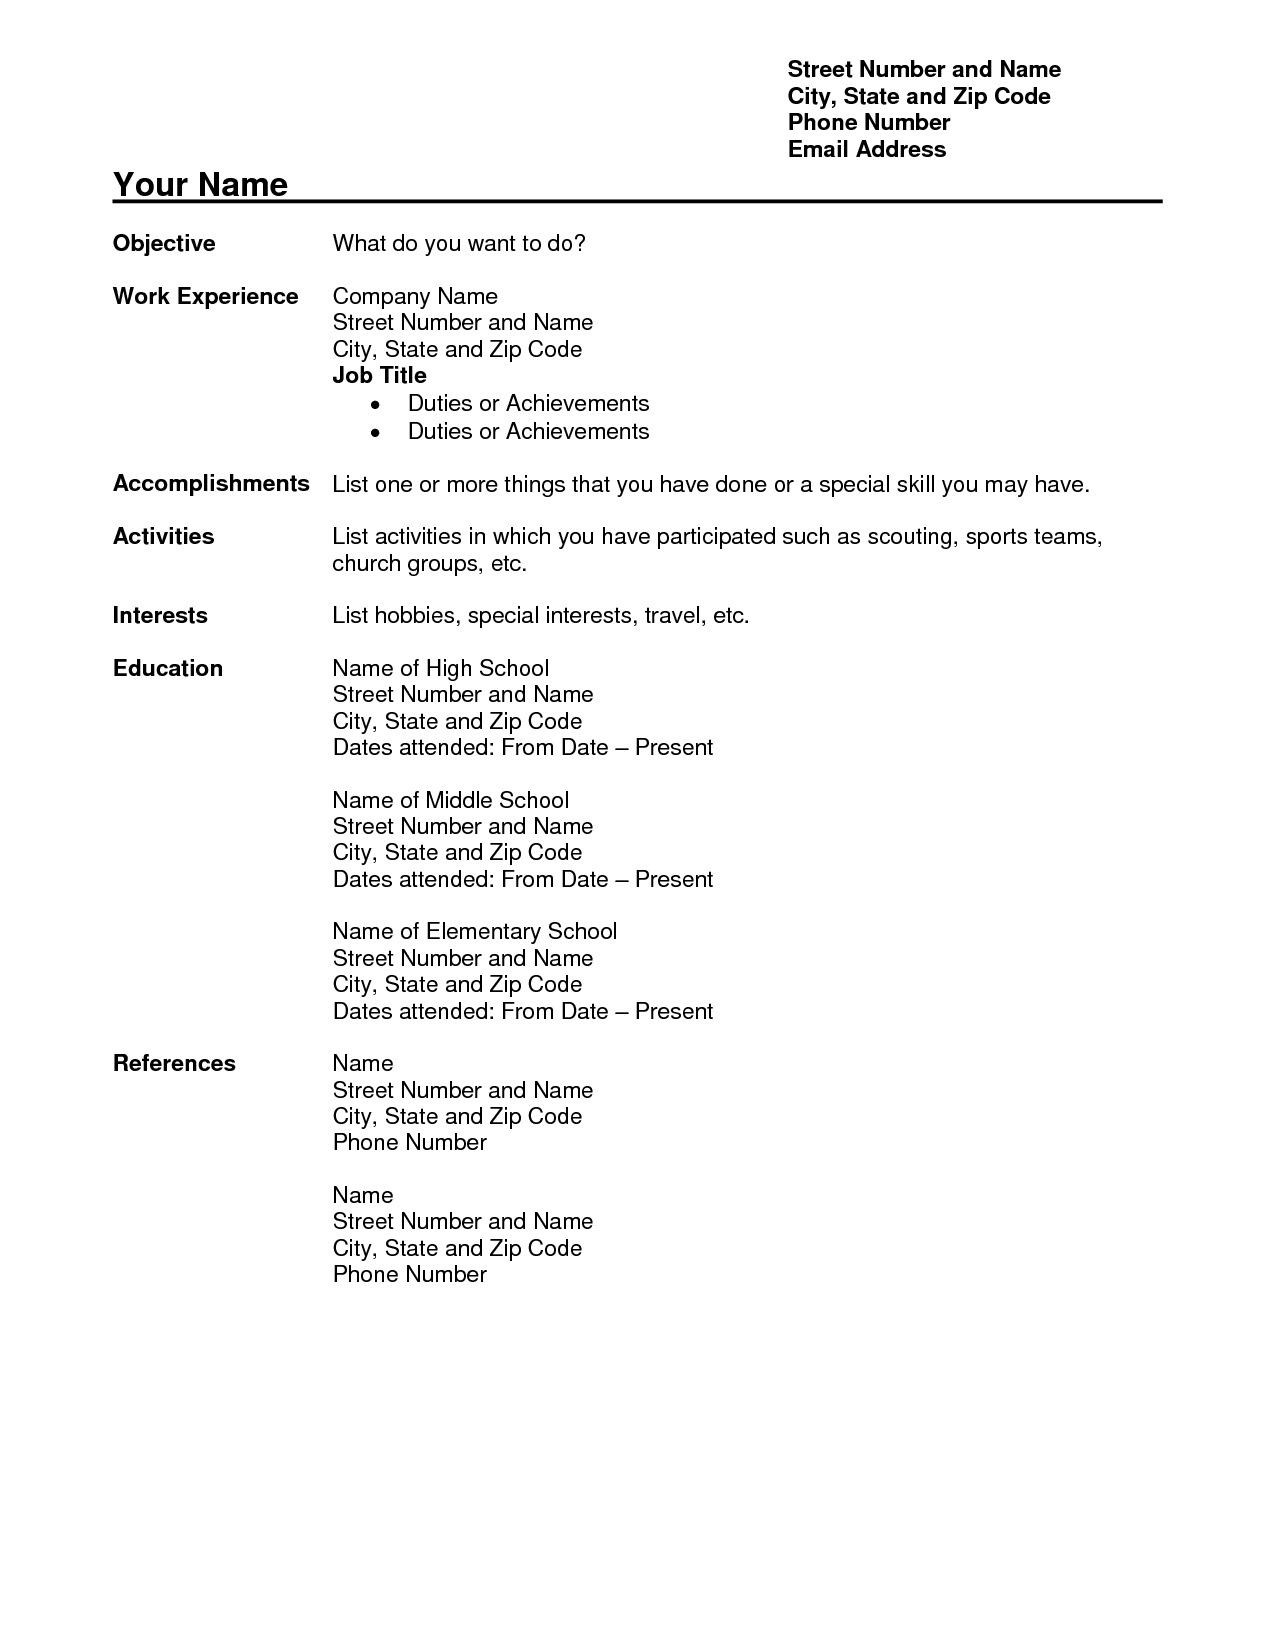 Free Teacher Resume Templates Download Free Teacher Resume Templates  Download, Free Teacher Resume Templates Microsoft